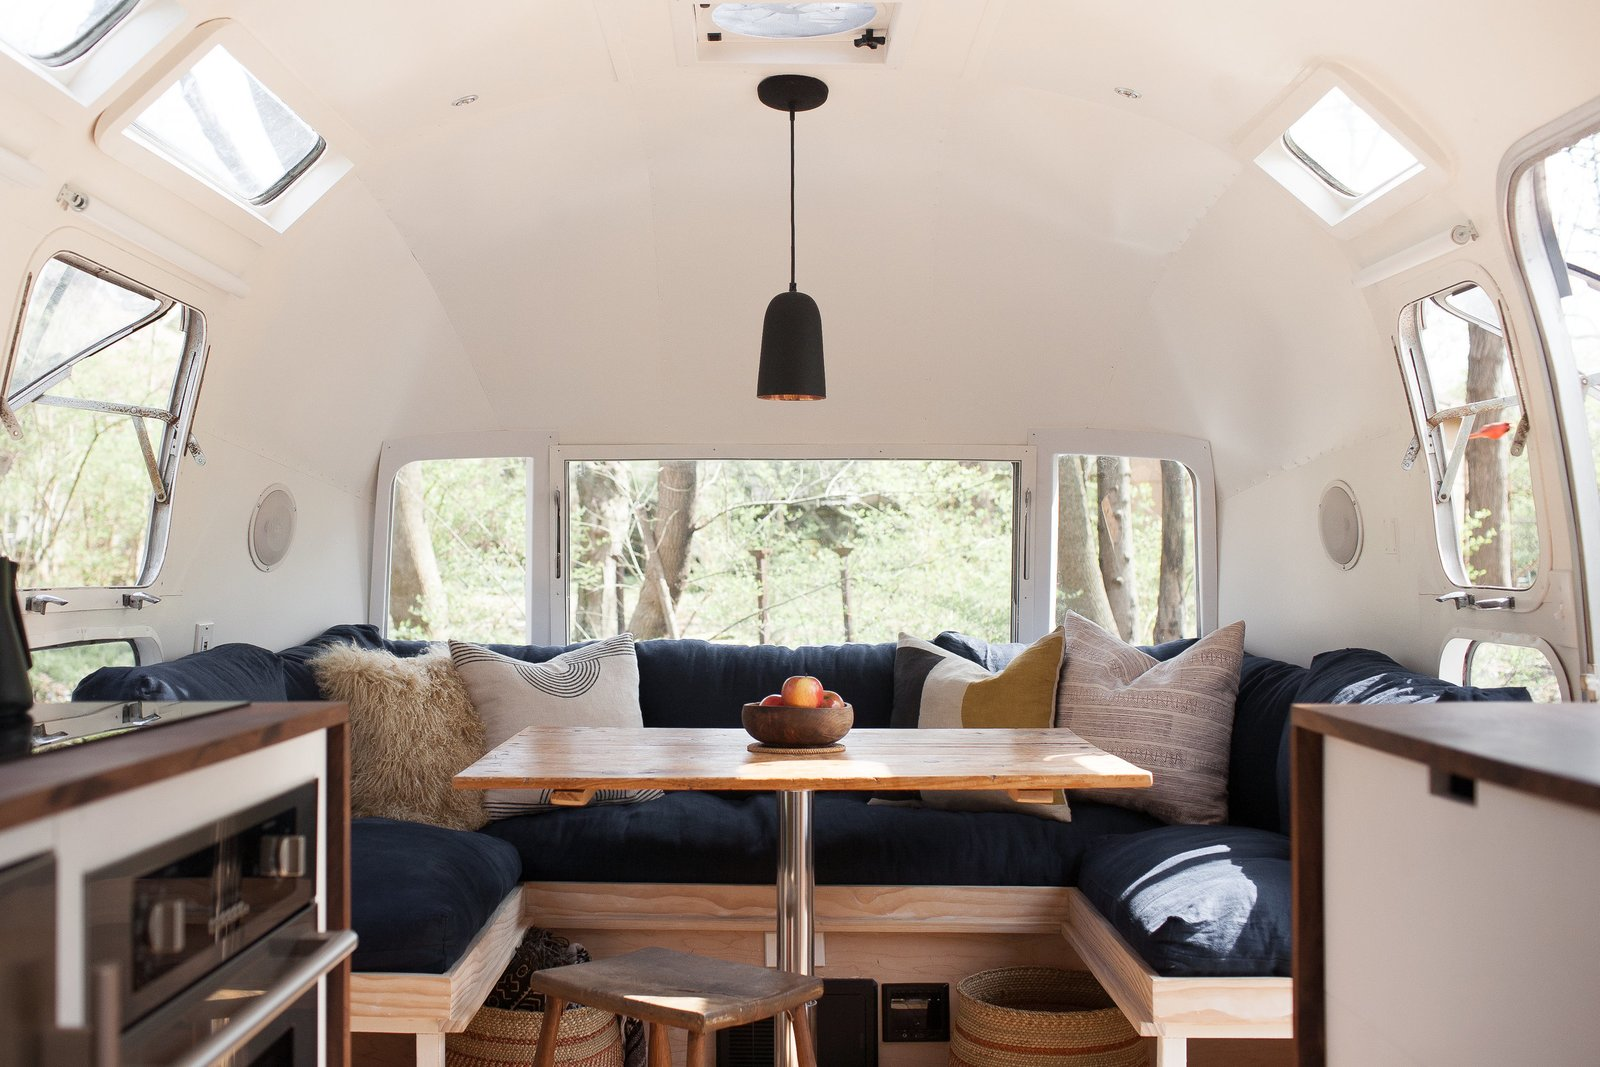 Dining Room, Bench, Pendant Lighting, Table, and Stools Ellen Prasse, an art teacher, and her partner, artist and writer Kate Oliver, transformed their lives and this 1977 Airstream over the course of a year, bringing the trailer back to life and giving it a classic but modern redo. Small touches, like a matte black faucet and light fixture paired with stainless steel appliances, along with a mixing of dark and light wood finishes prevent the space from feeling too matchy-matchy and overwhelming.  Best Photos from These 7 Vintage Airstreams Were Transformed Into Modern Escapes